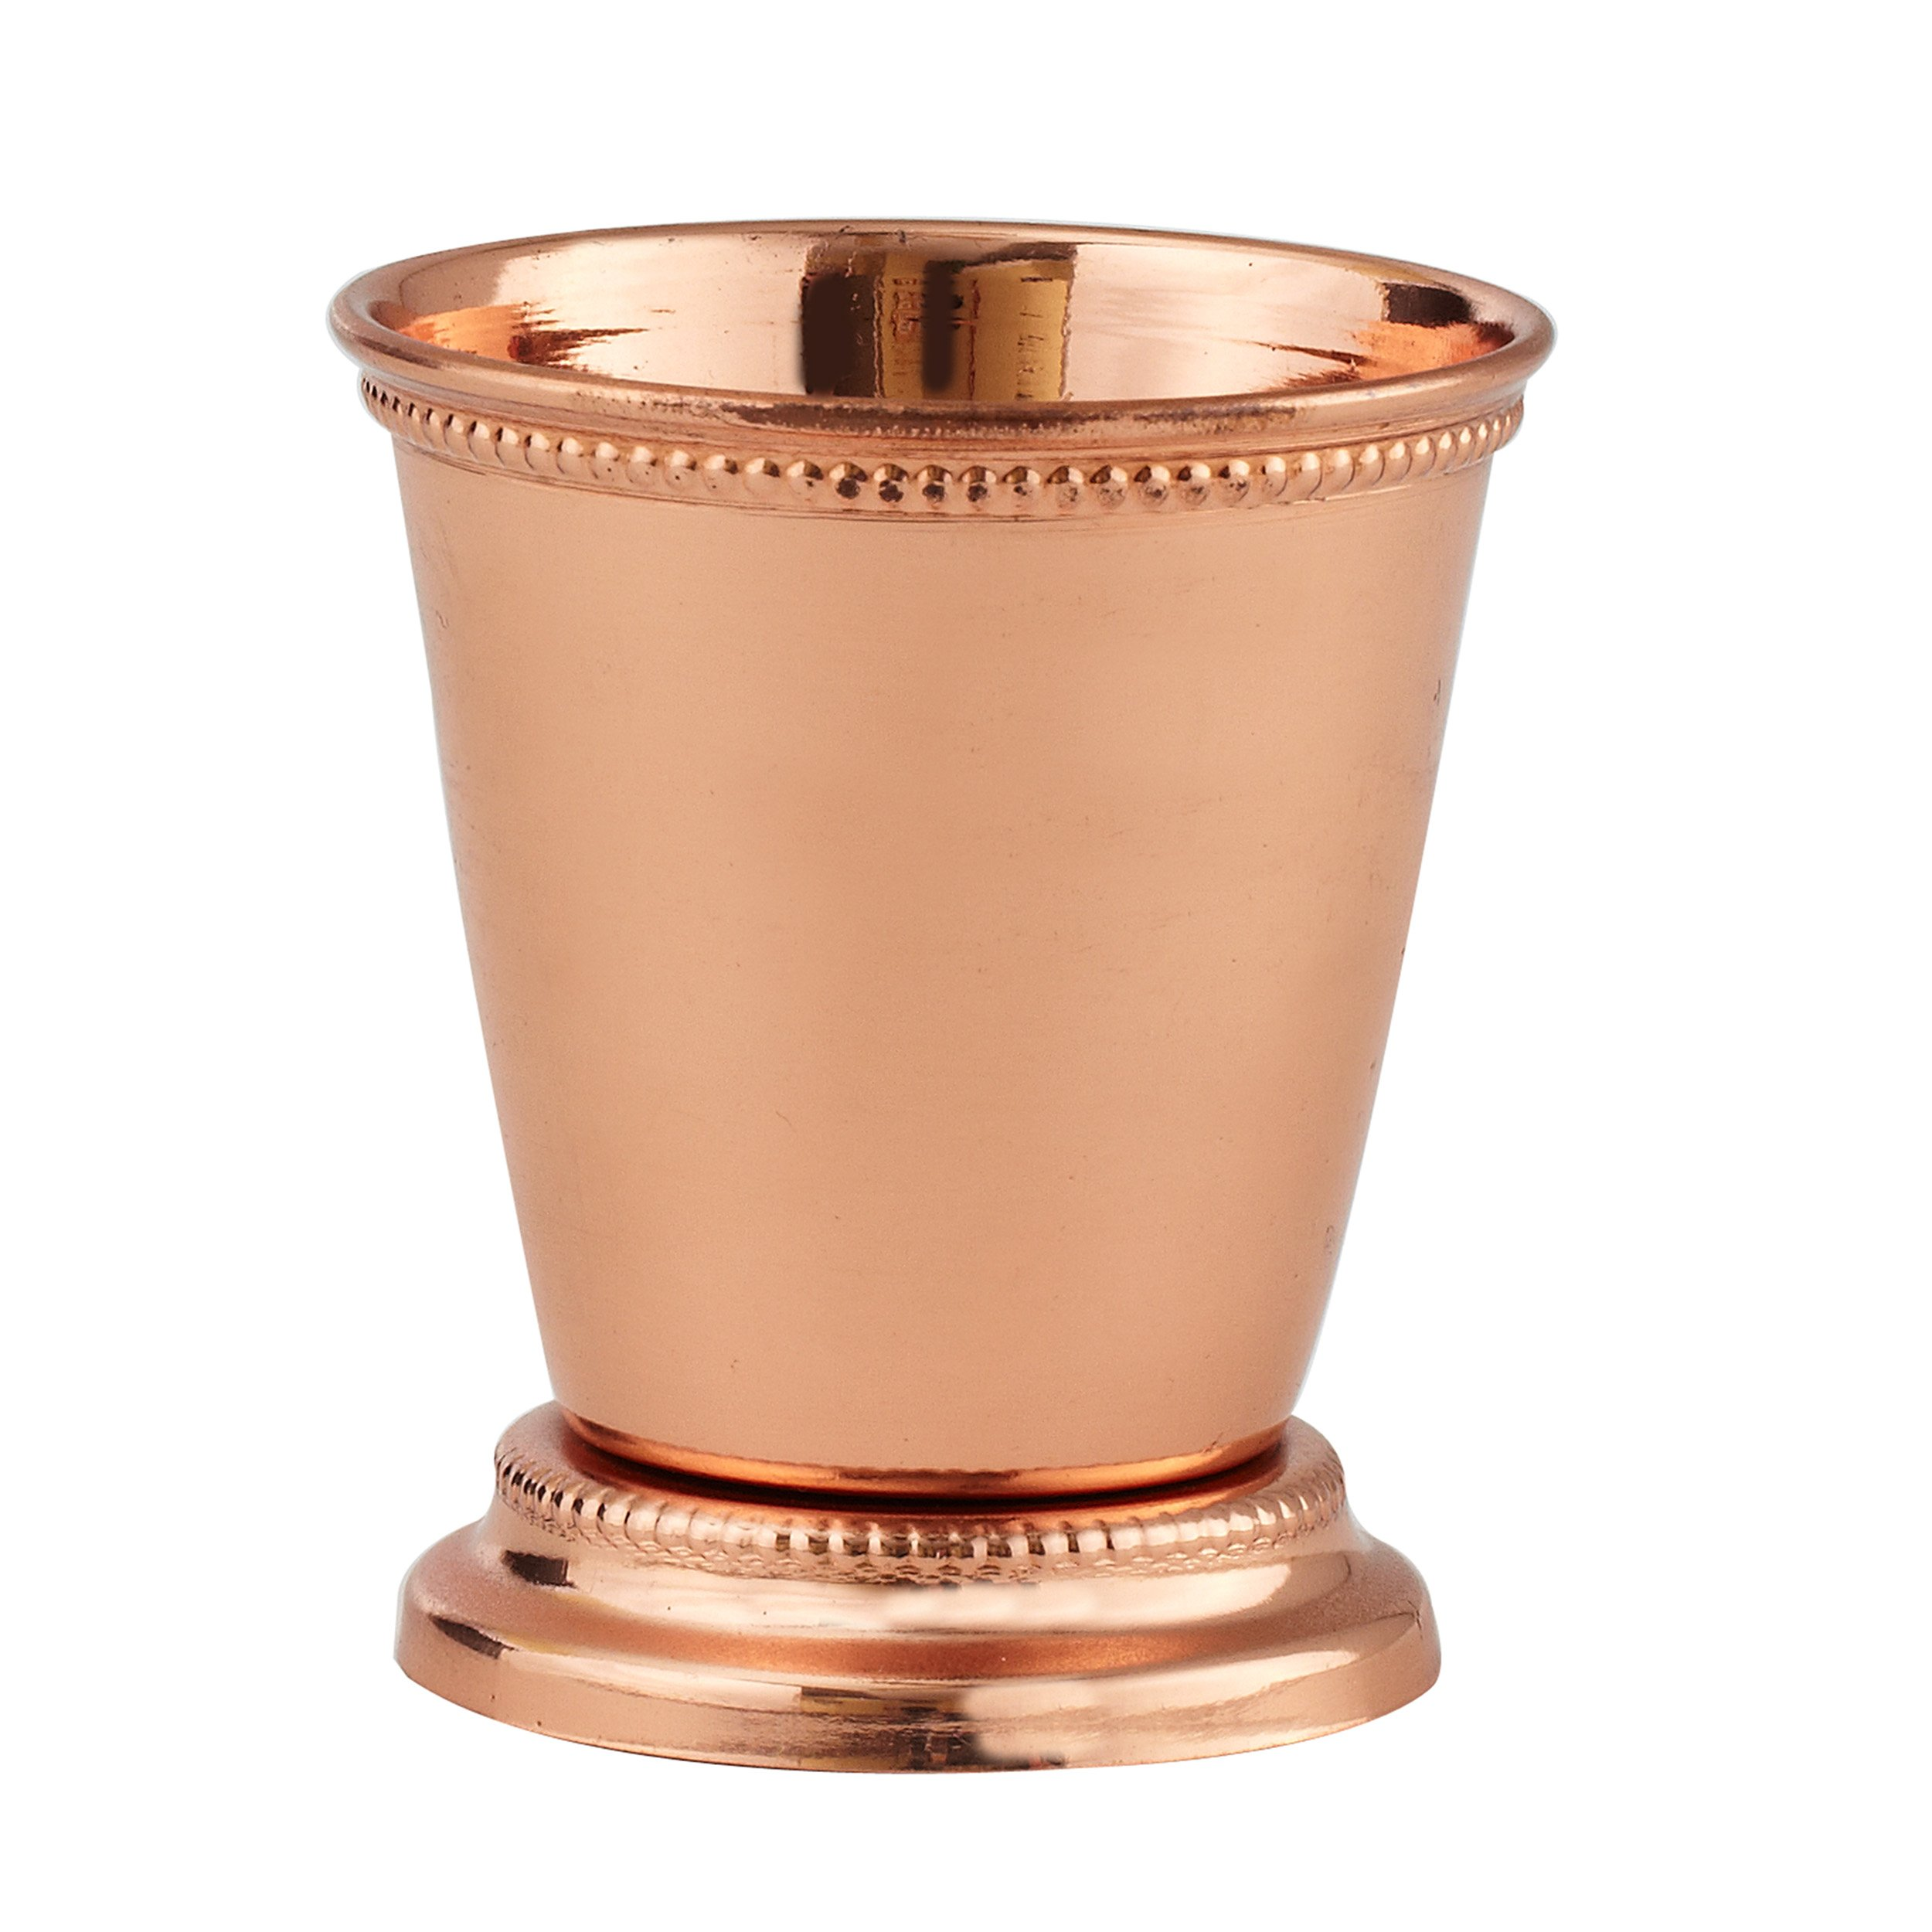 Elegance Copper Plated Mint Julep Cup, 2.75-Inch, Copper